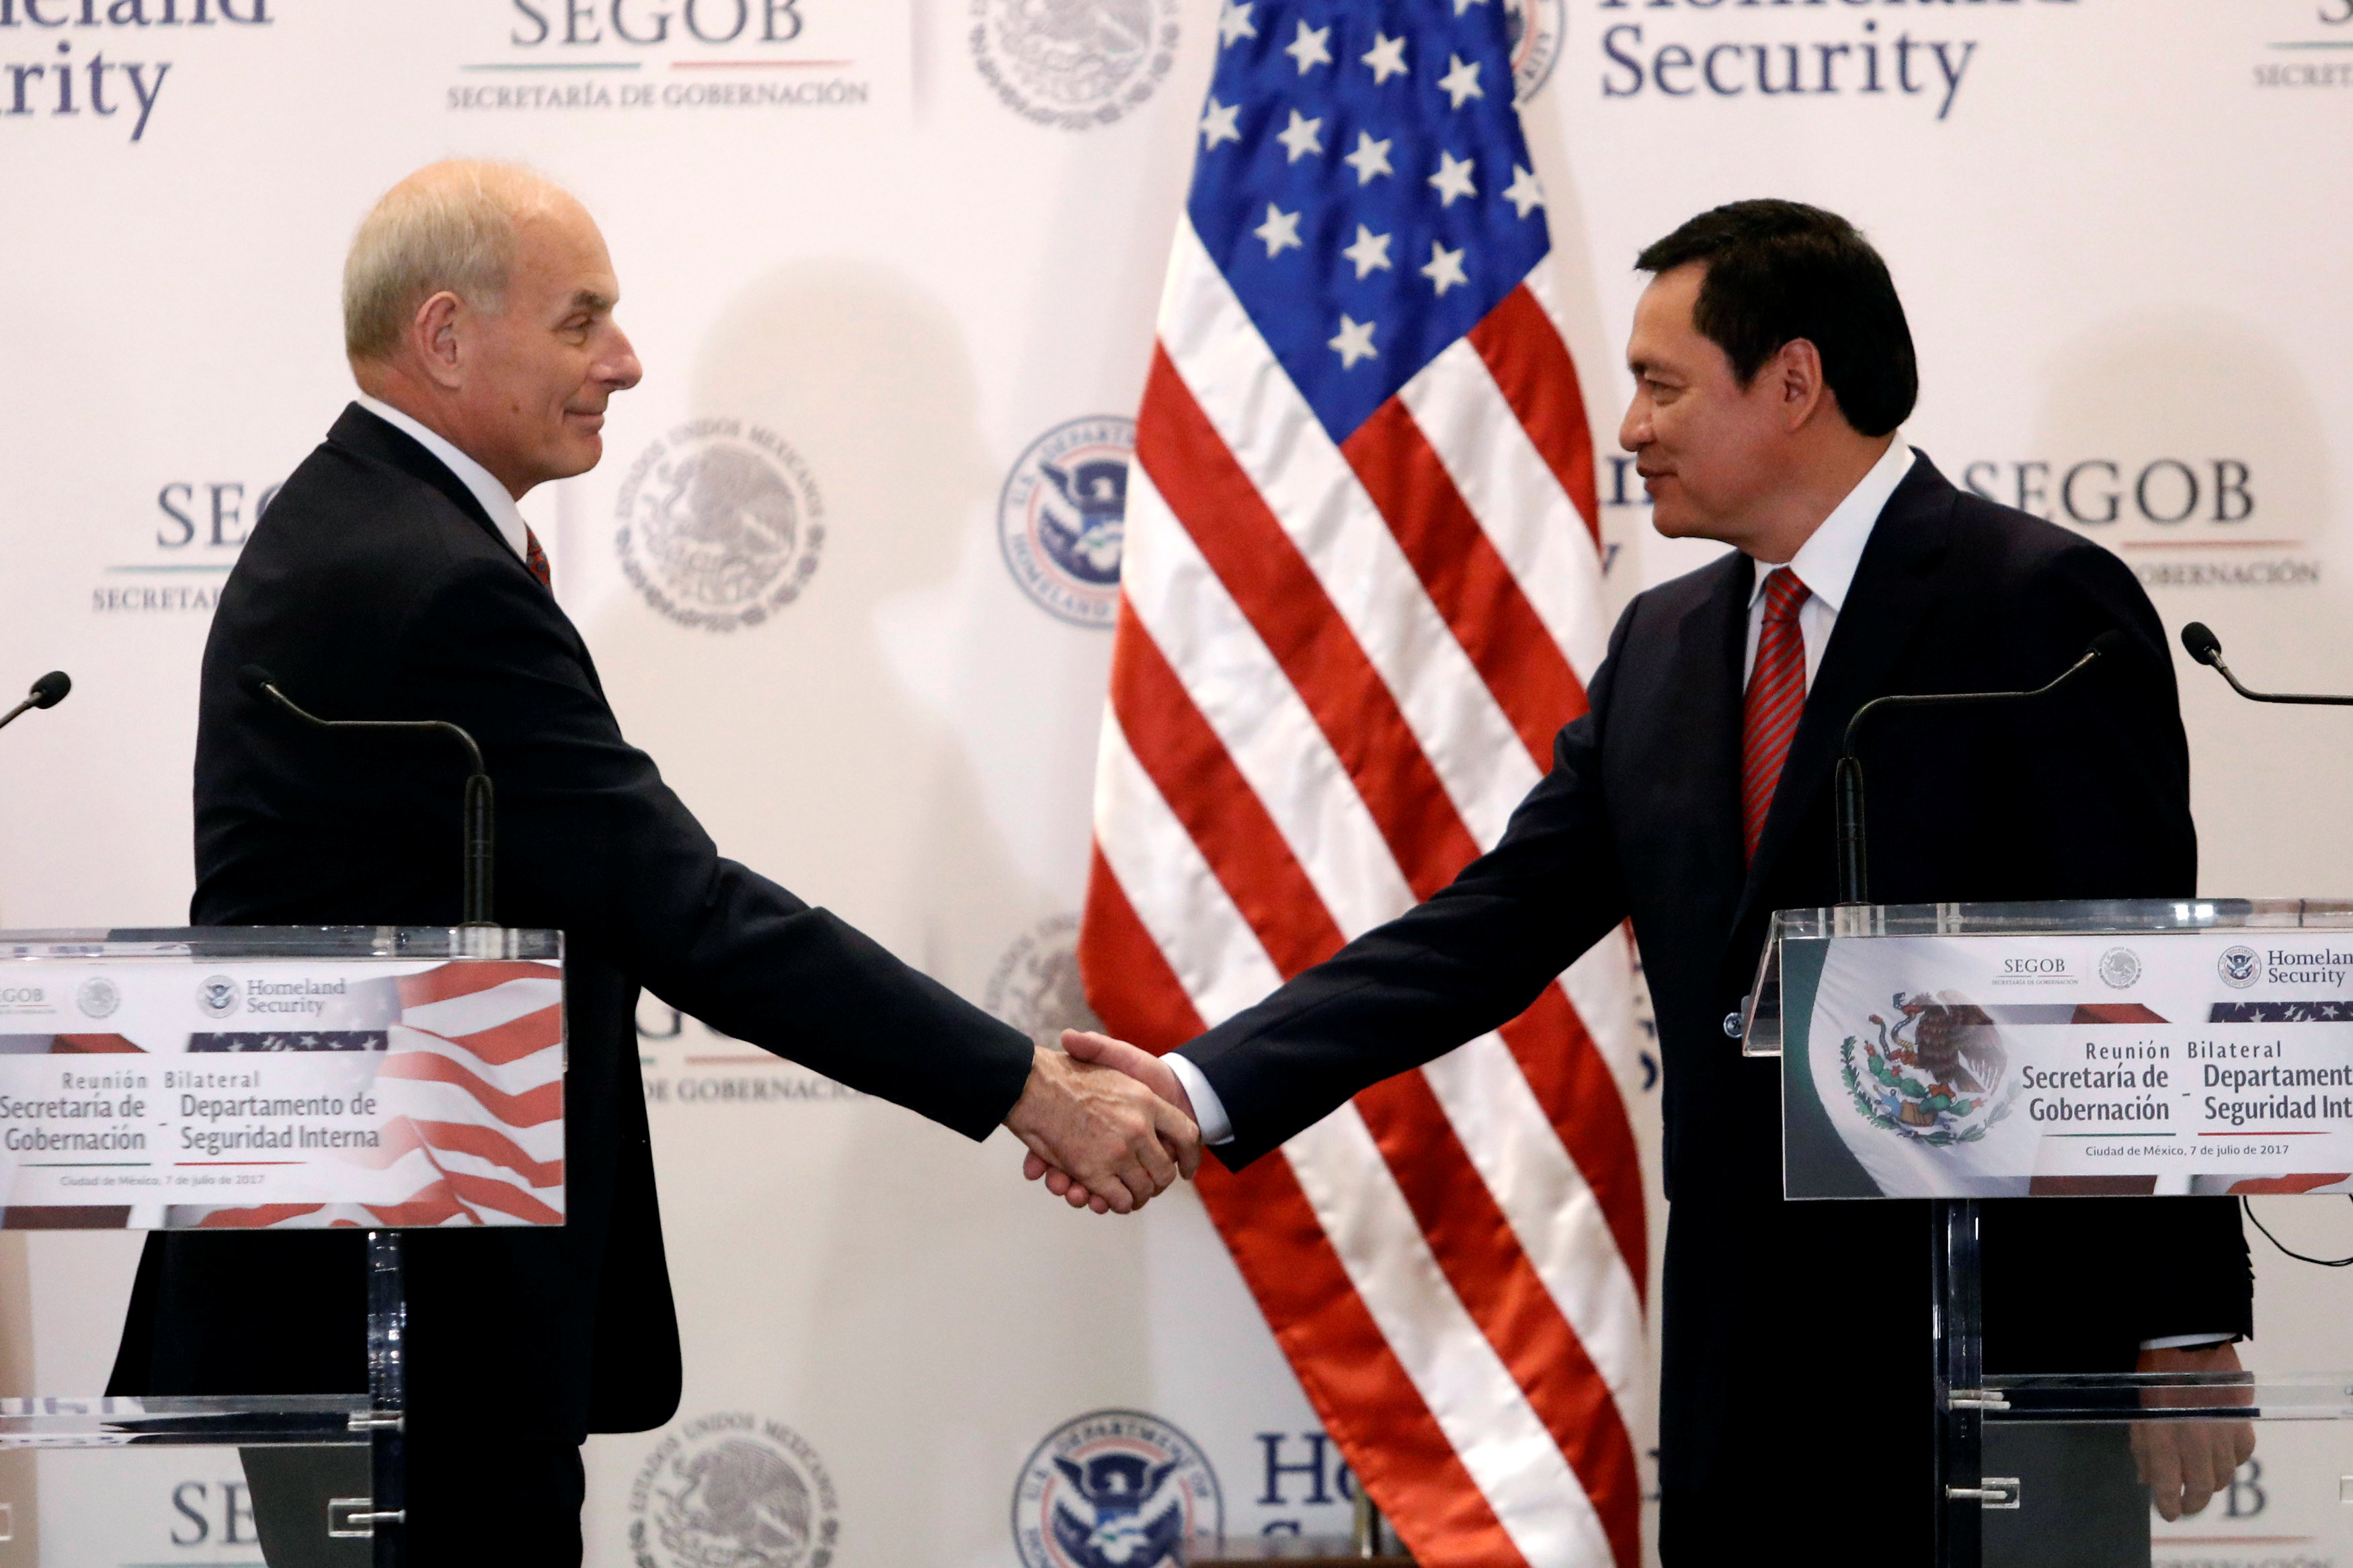 U.S. Secretary of Homeland Security John Kelly shake hands with Mexico's Interior Minister Miguel Angel Osorio Chong after deliver a joint message at the Secretary of Interior Building in Mexico City, Mexico, July 7, 2017. REUTERS/Edgard Garrido